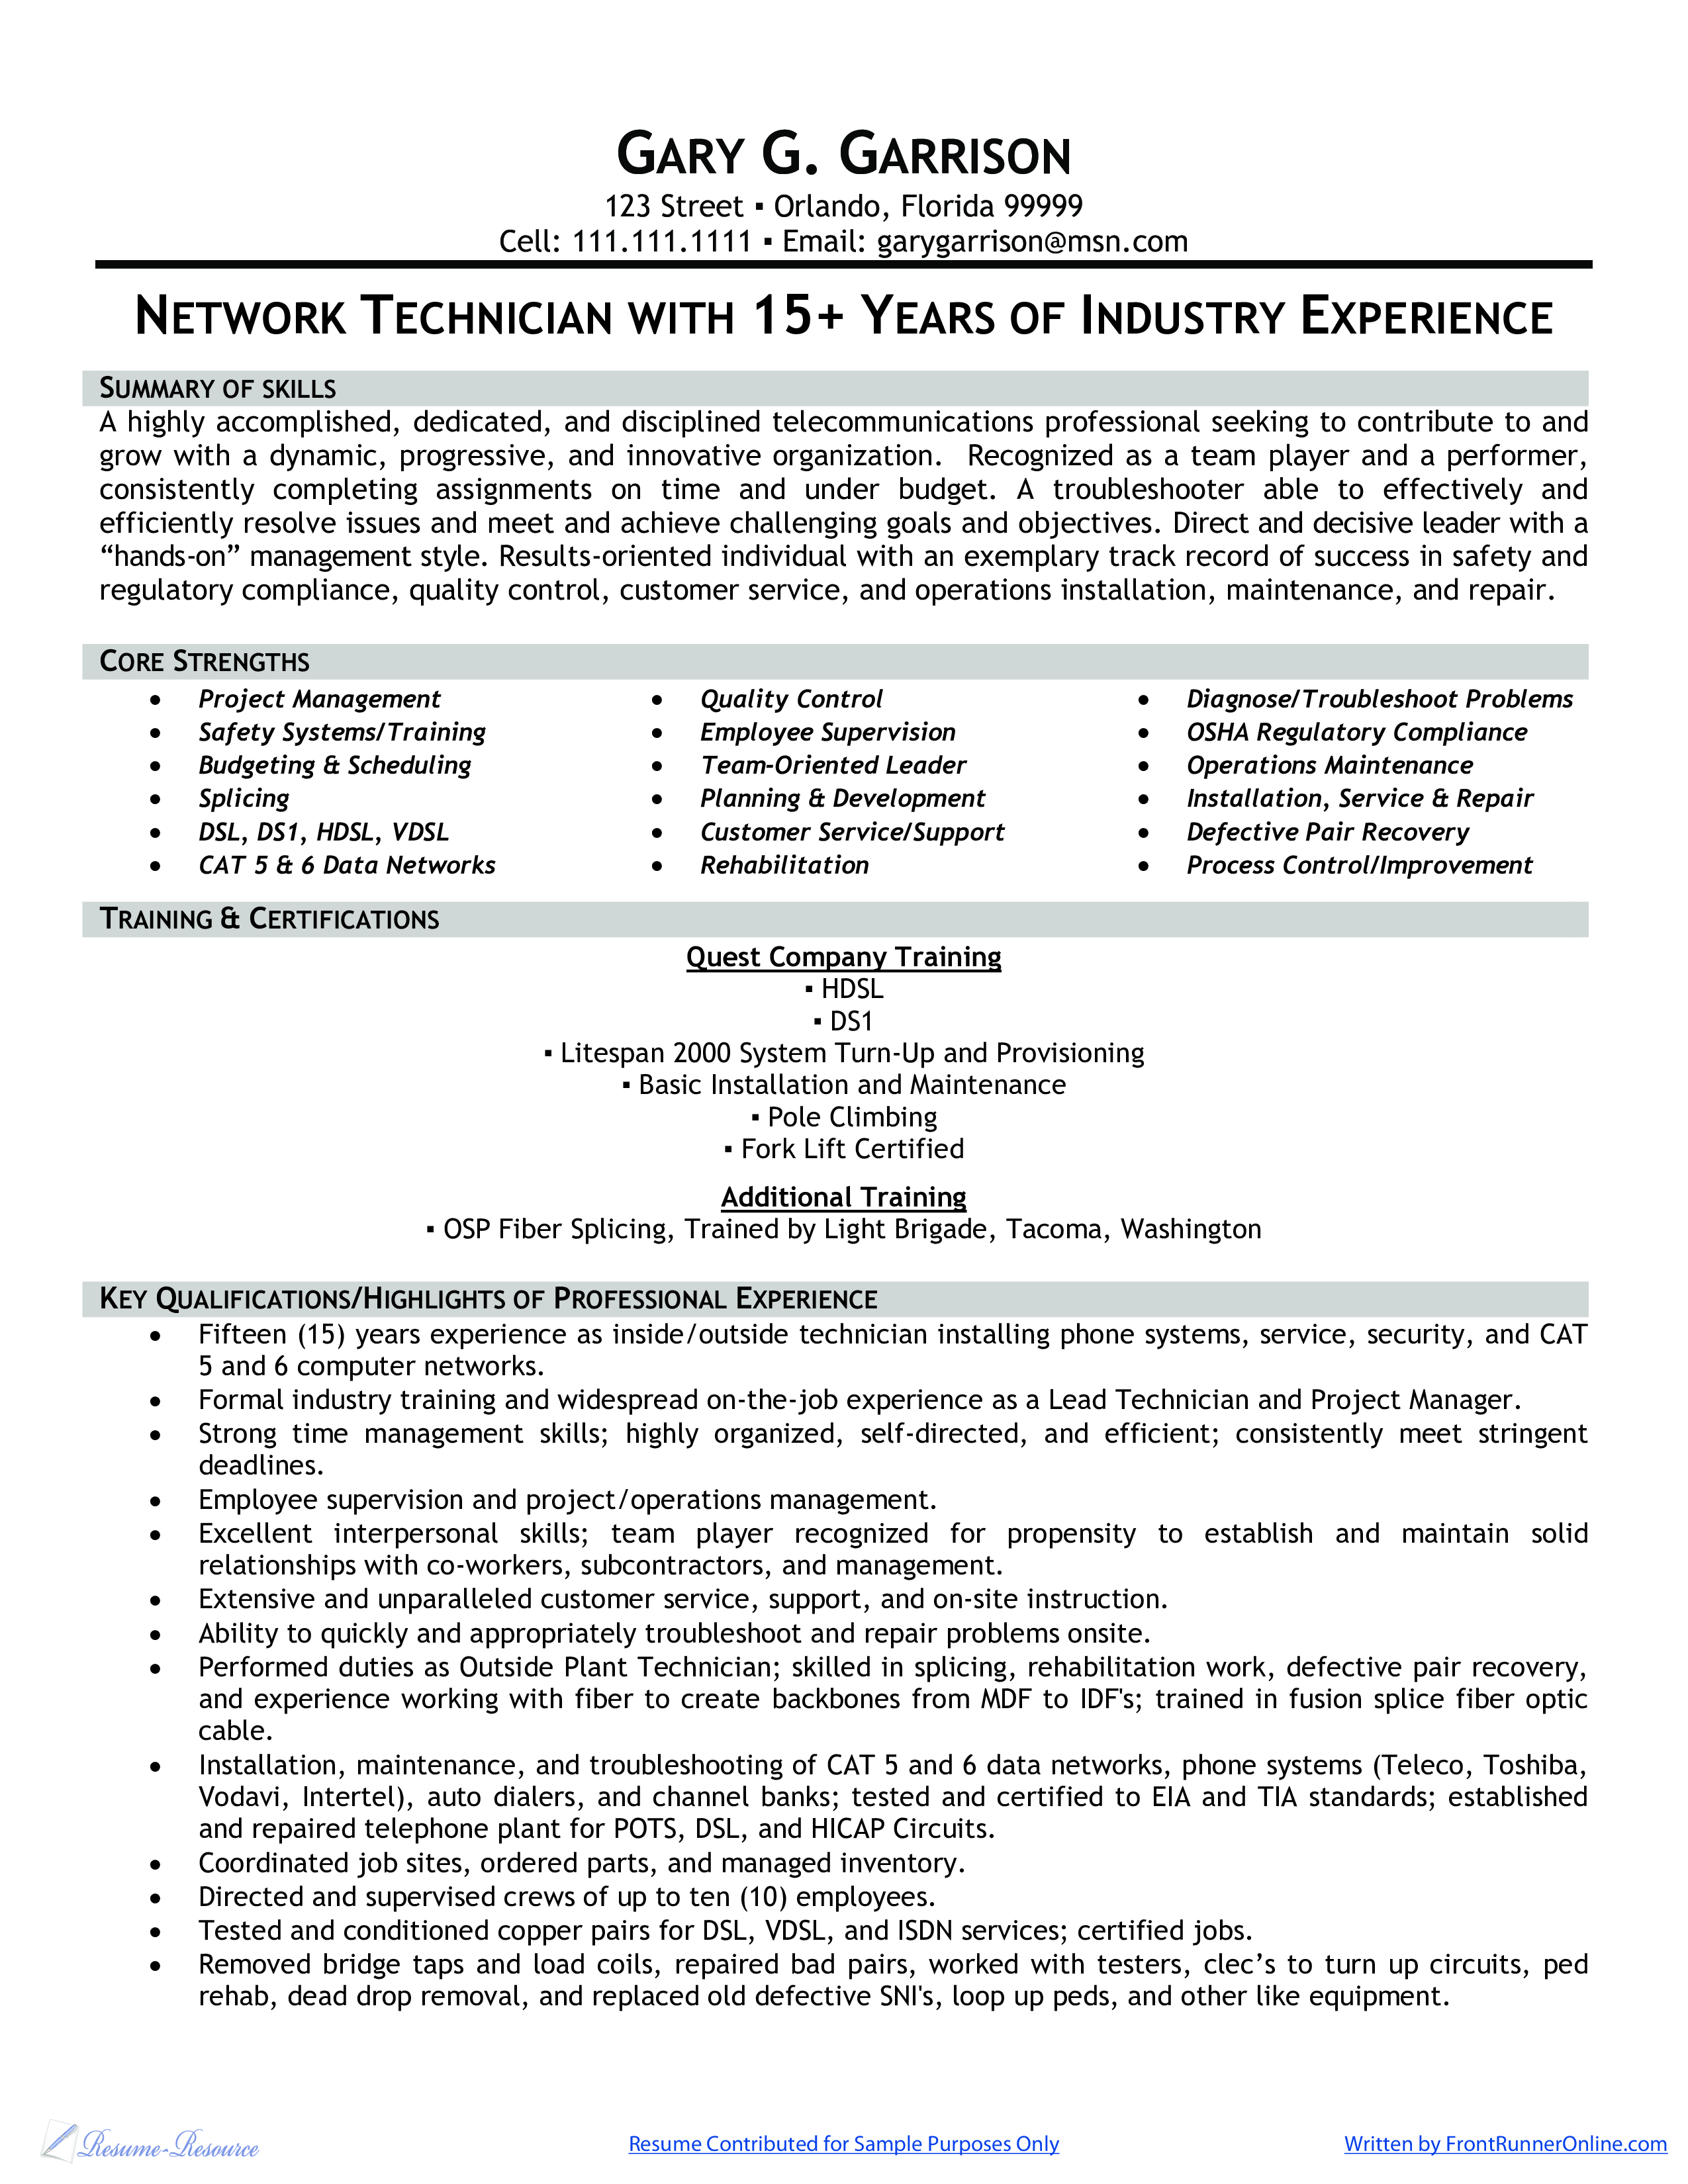 Resume For A Network Technician Templates At